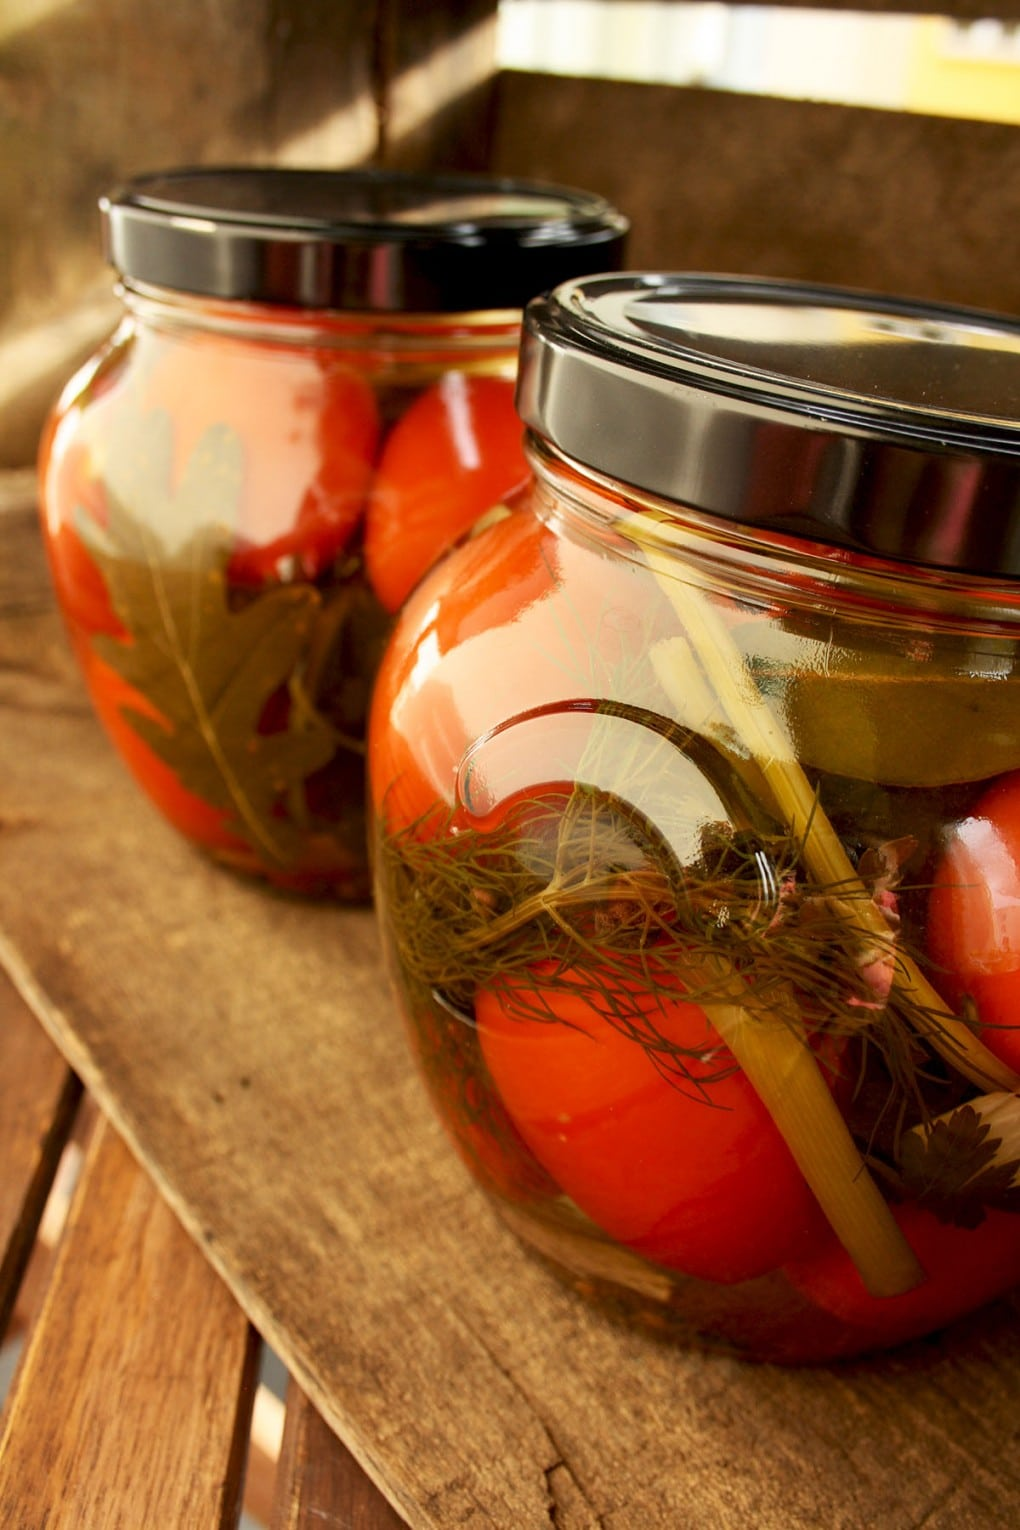 Russian Grandma's Pickled Tomatoes on the Wooden Table